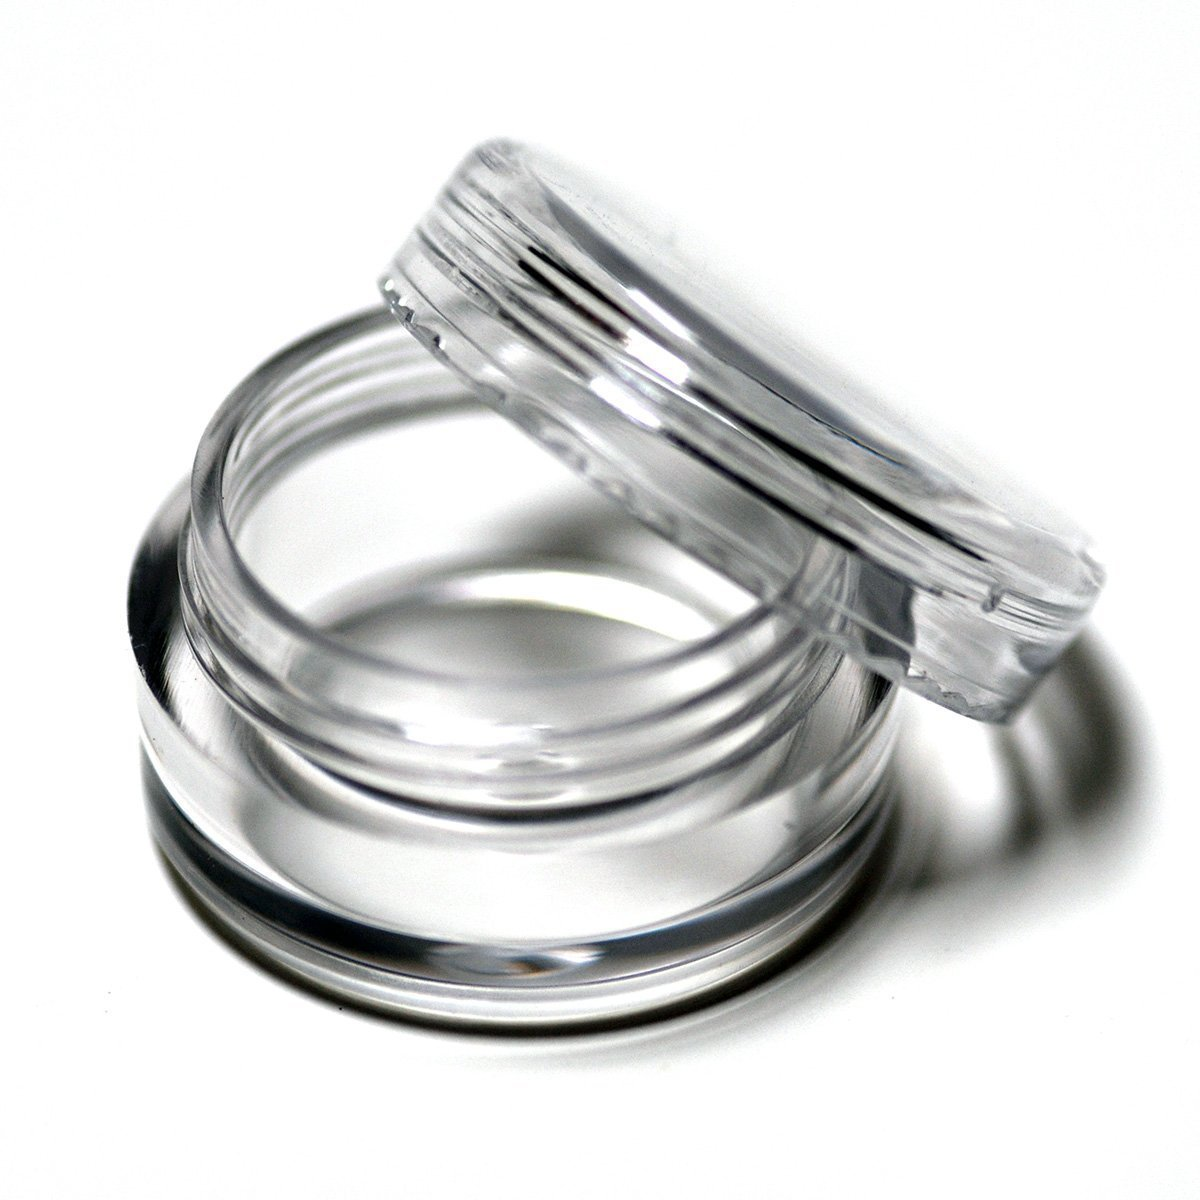 JOVANA 25 It is very popular Pcs Clear Plastic Cosmetic At the price of surprise Gram Containers 5 - Sample